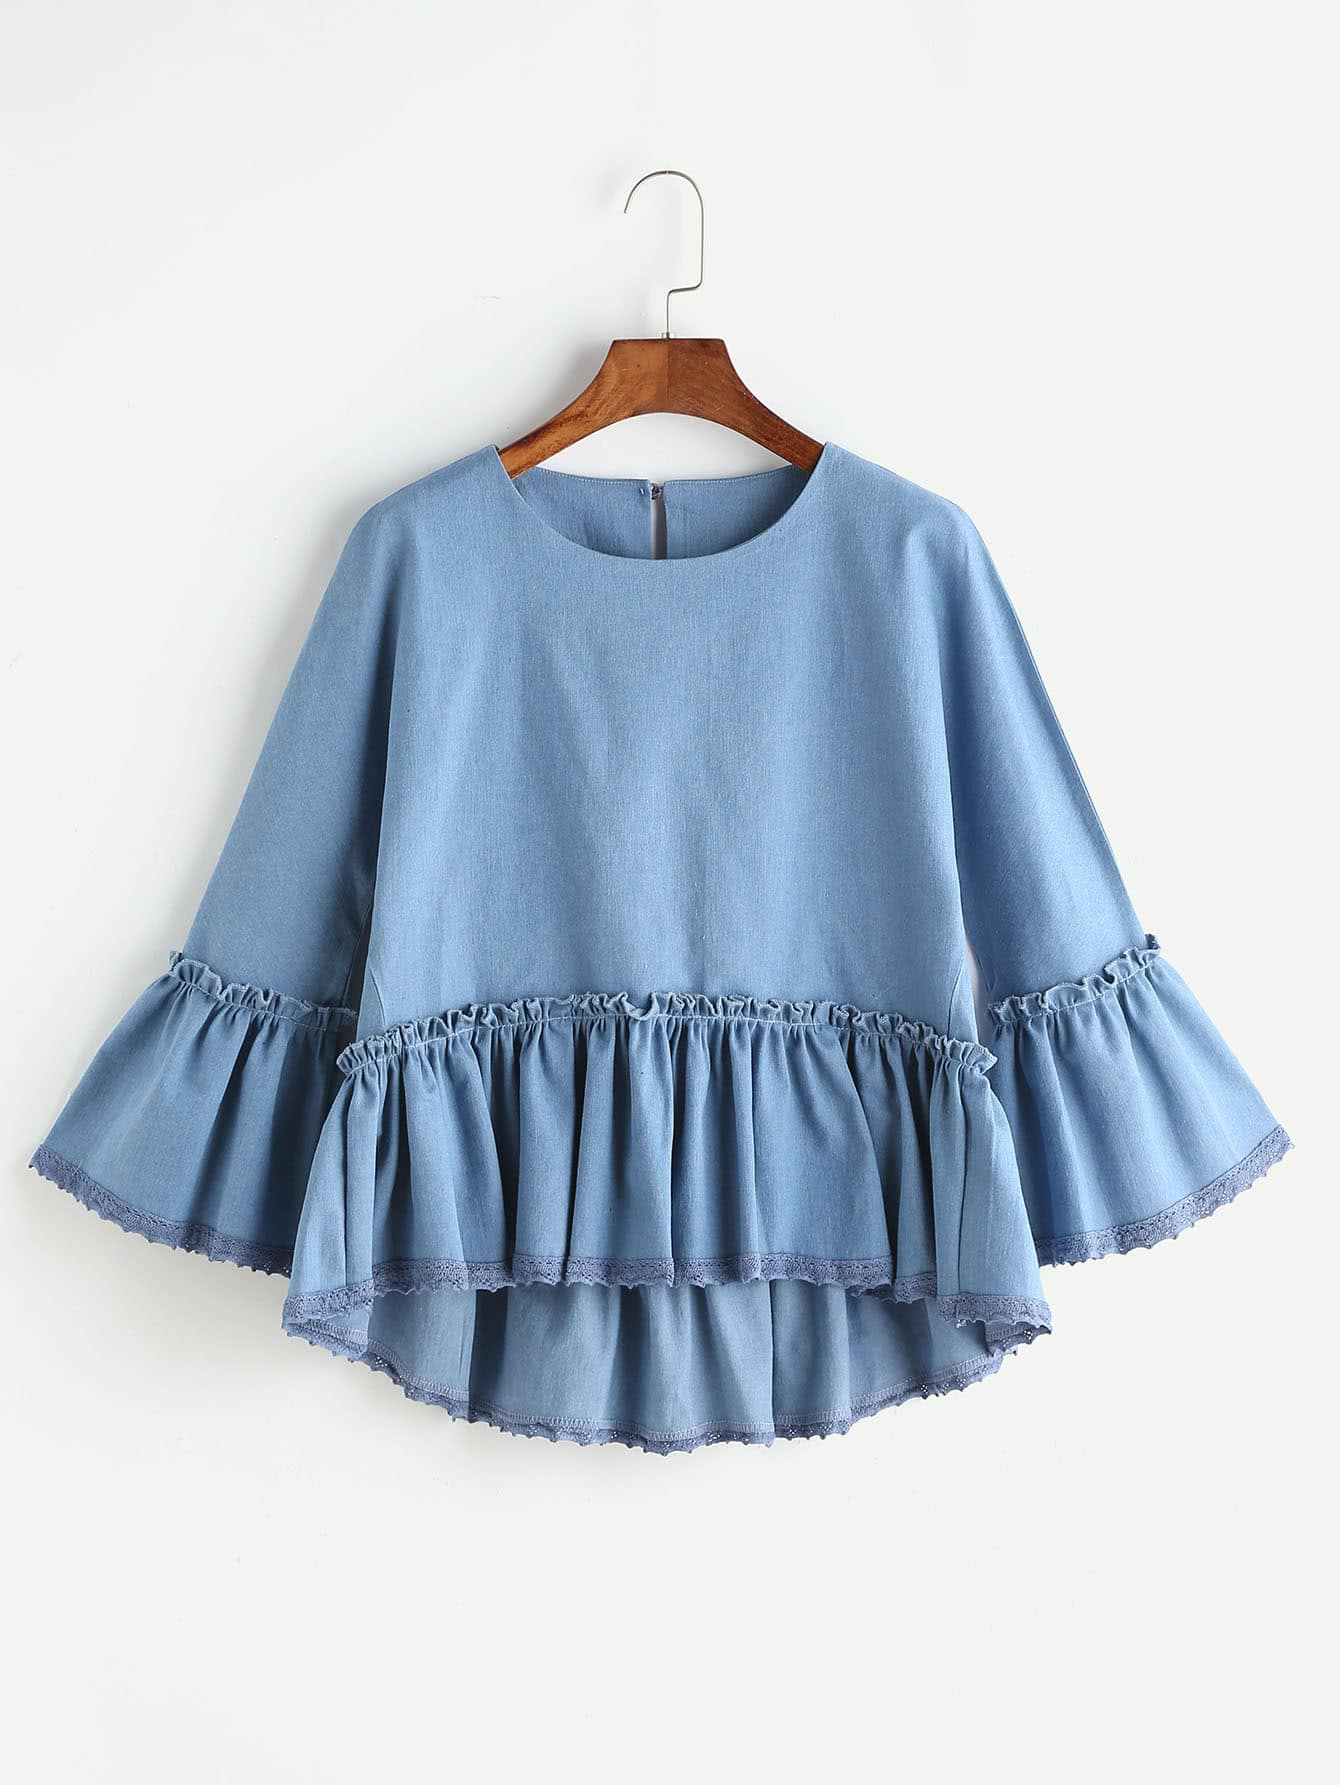 Image of Blue Ruffle Trim Bell Sleeve High Low Denim Top